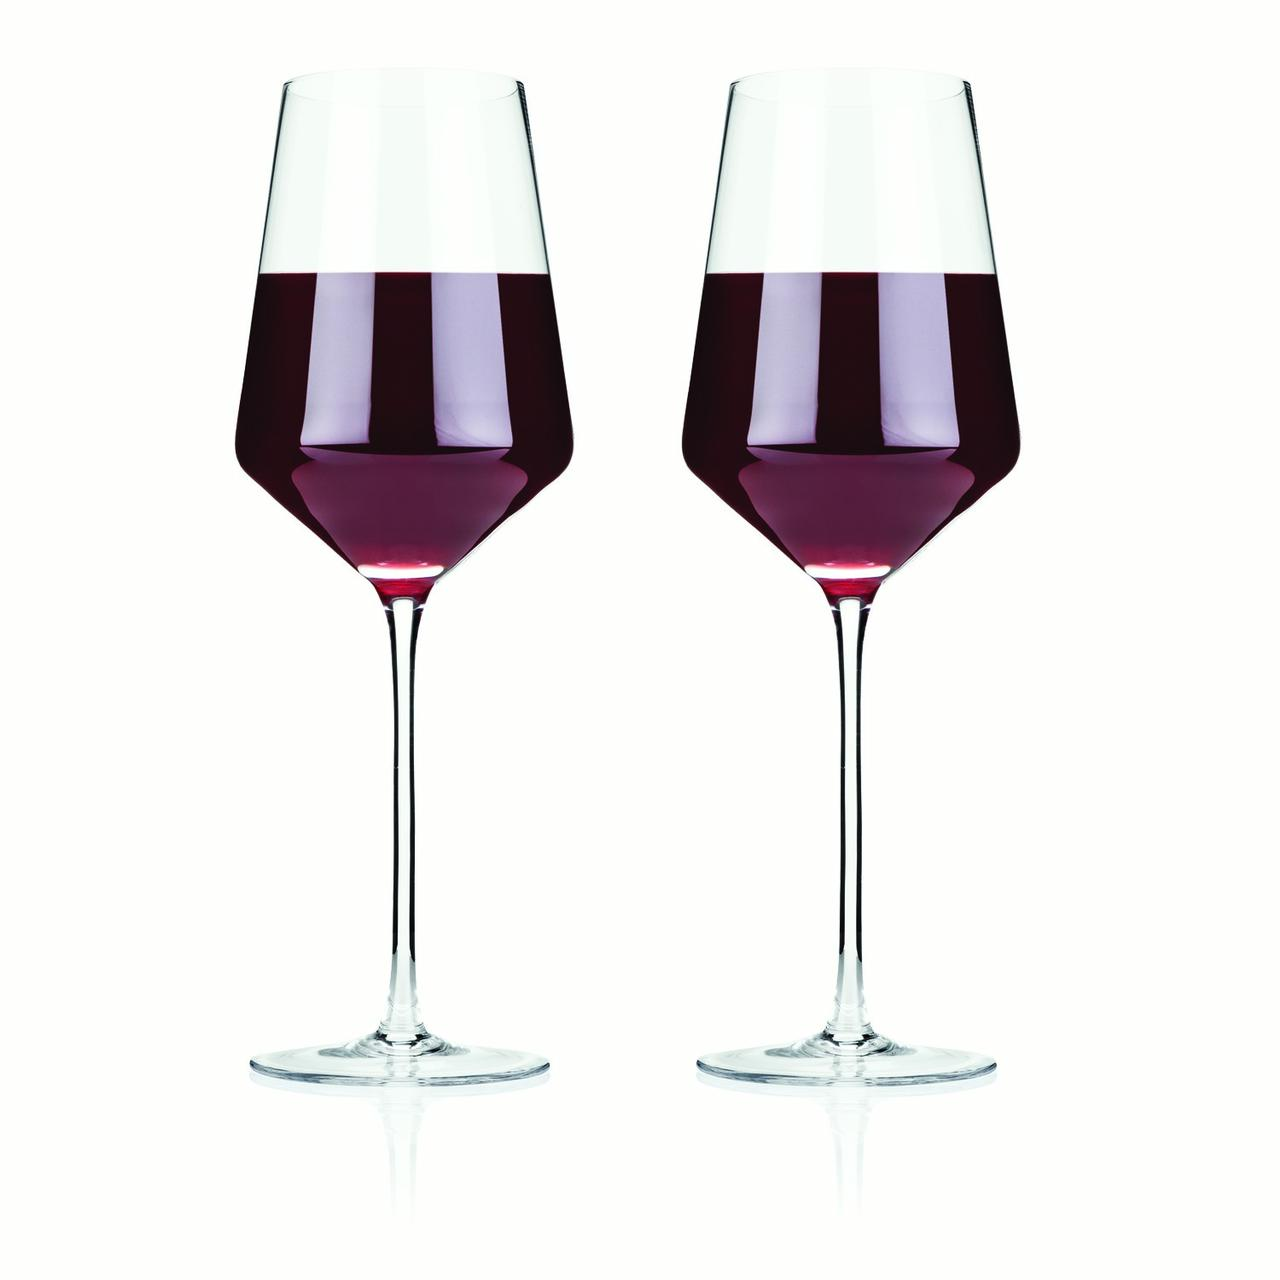 Viski Raye Crystal Bordeaux Glasses (Set of 2) by True Brands